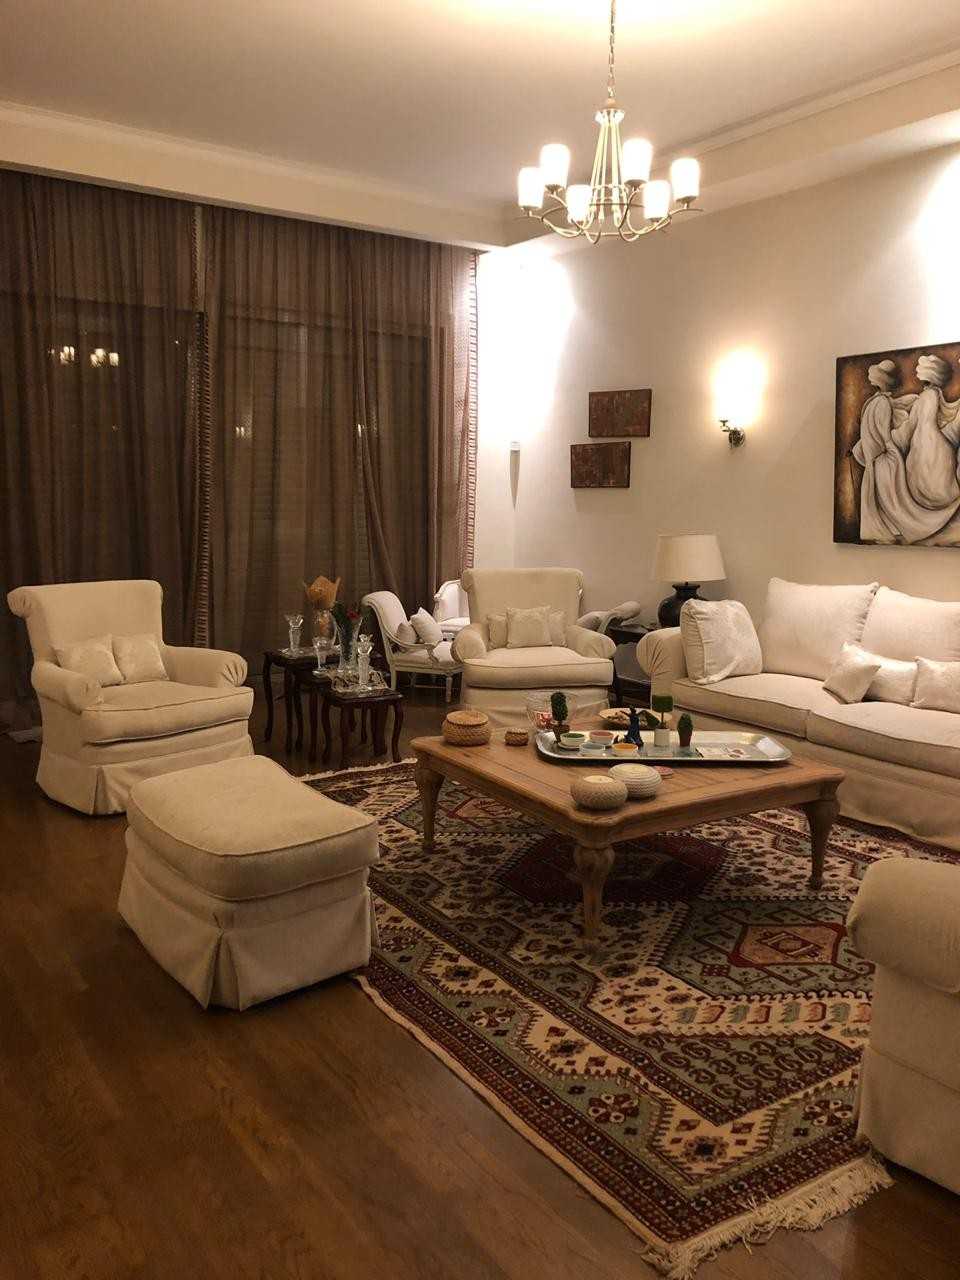 Villas For Rent In New Cairo Lake View -#10